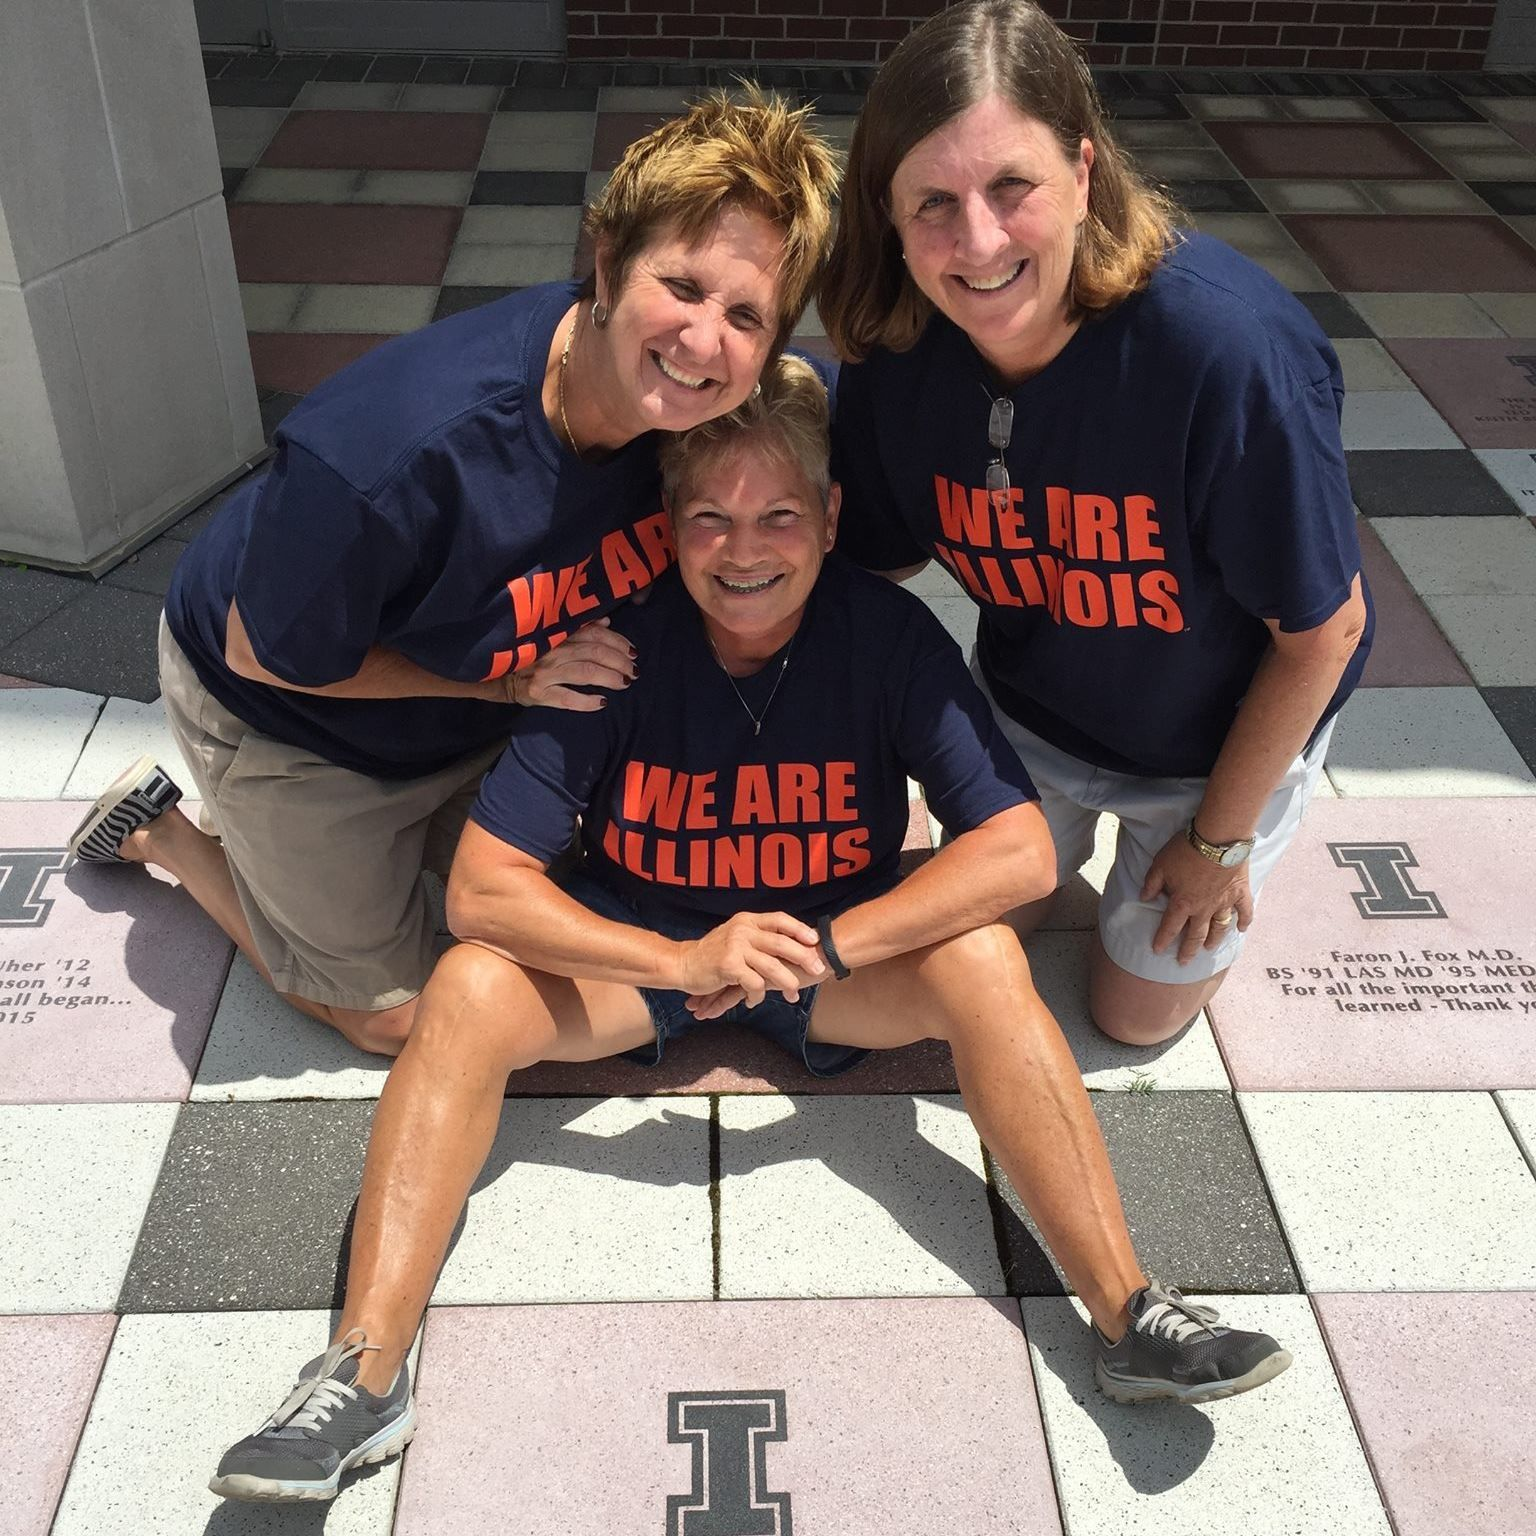 Image of former women's basketball players Marijo Dluzak (BA, 77 LAS), Susan Bonner (BS, 79 ALS), and Becky Beach (BS, 82 ALS)